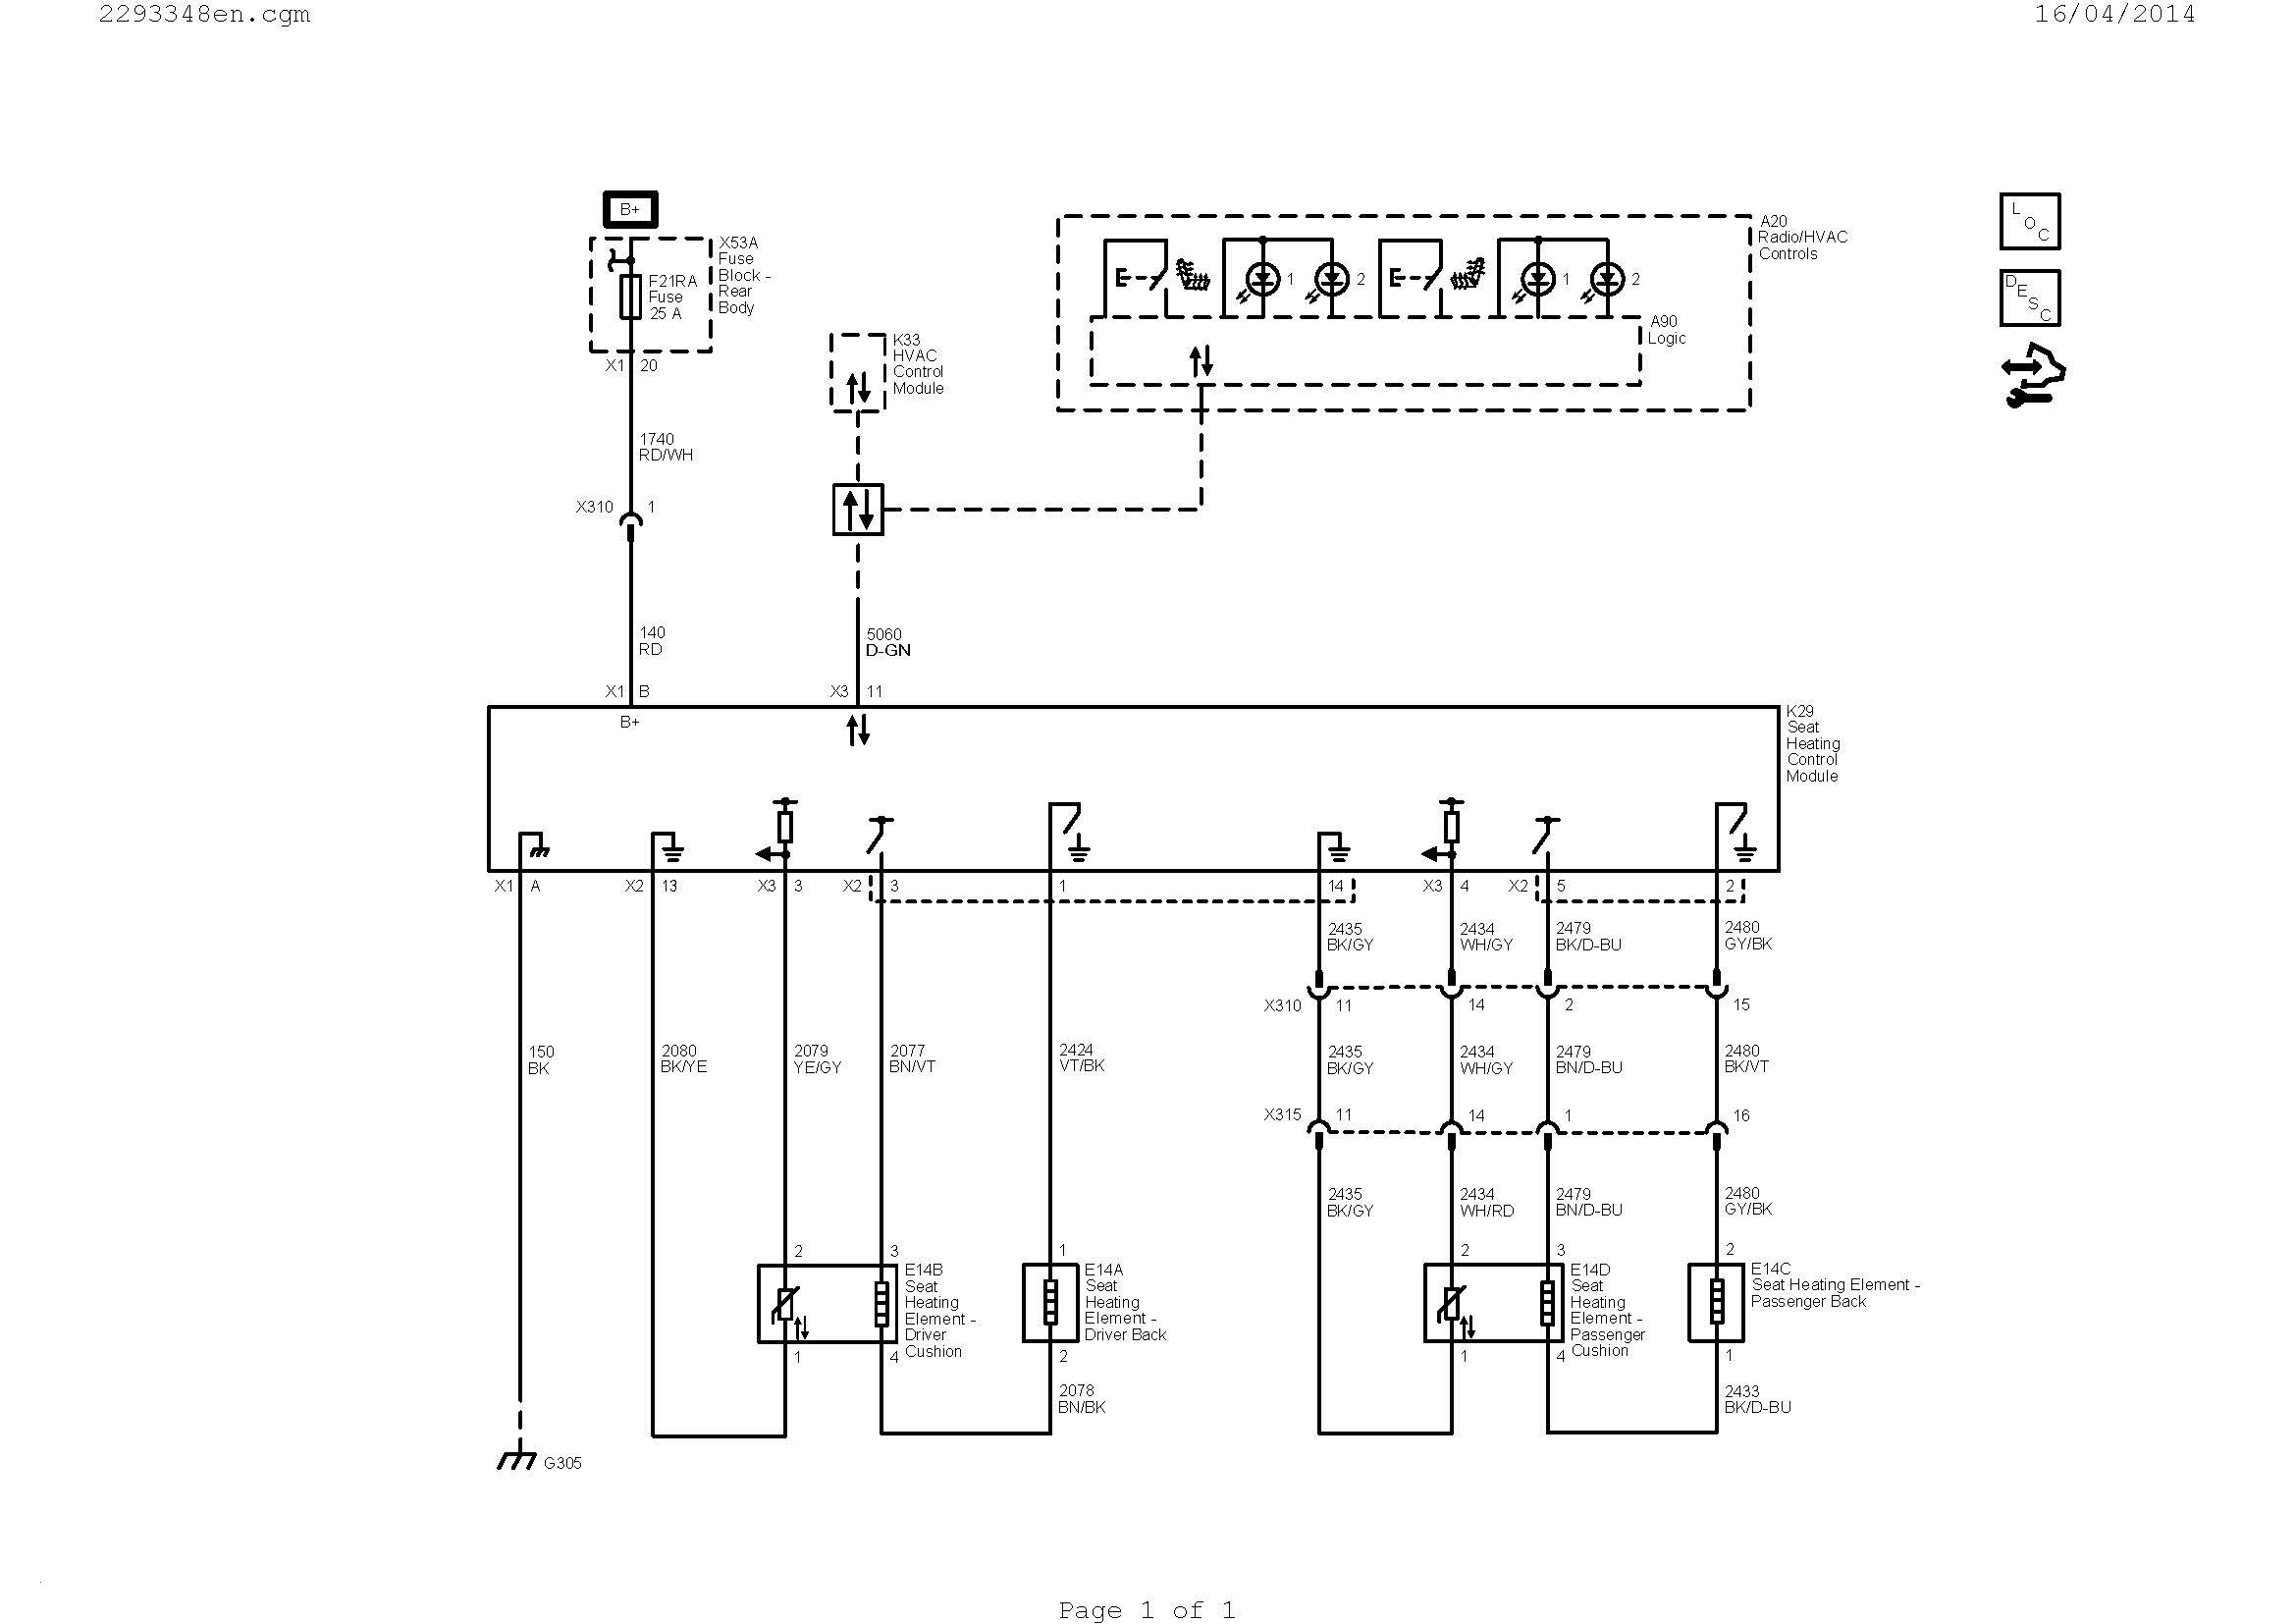 Wire Diagram for Car Stereo Automotive Wiring Diagrams Schaferforcongressfo Of Wire Diagram for Car Stereo